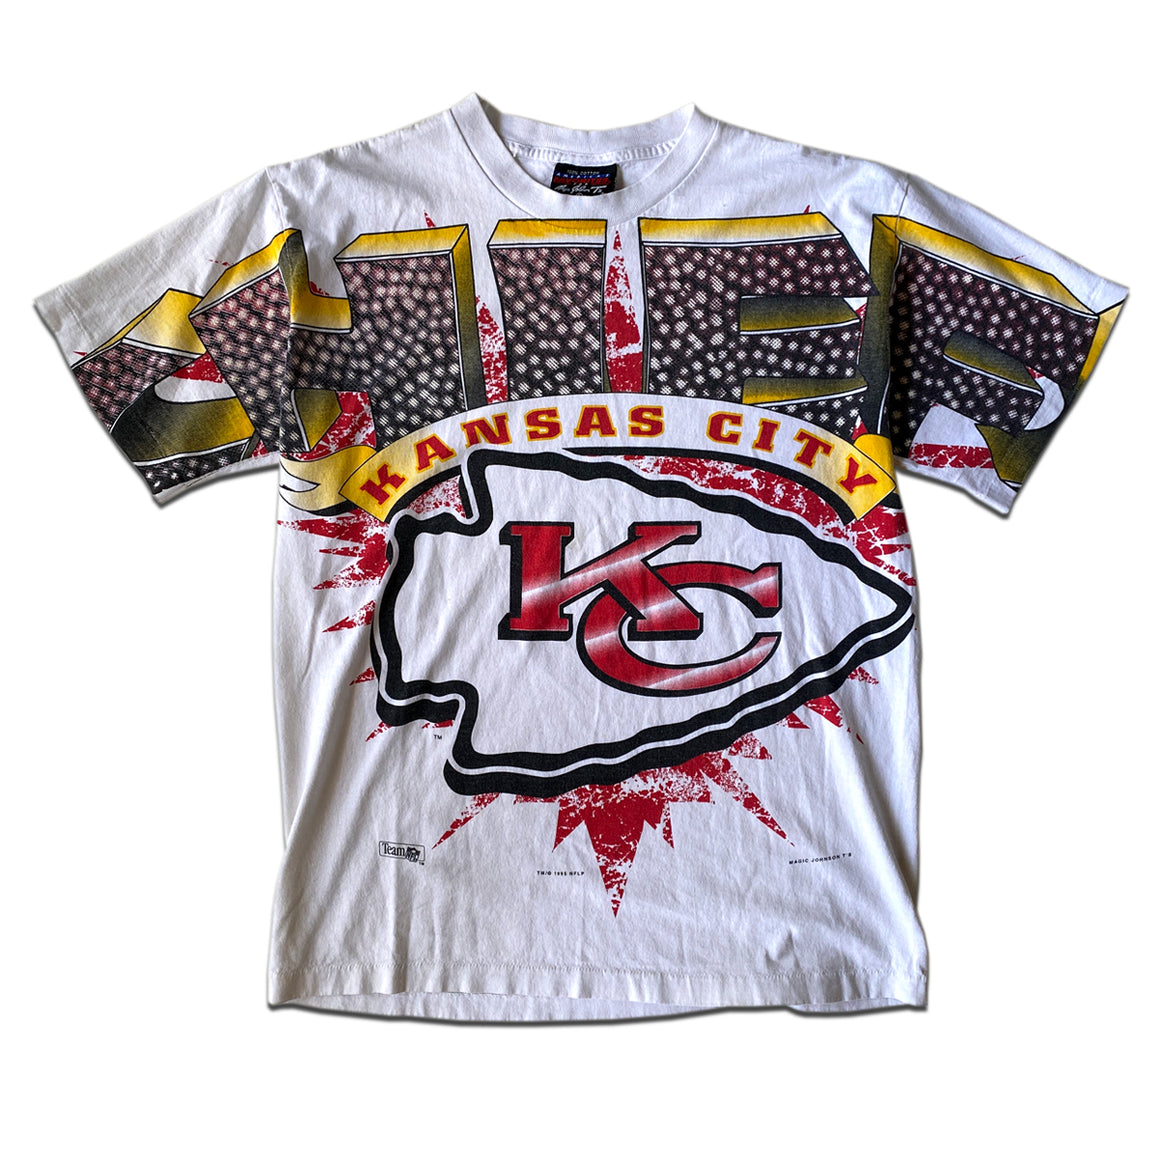 WESTSIDE STOREY VINTAGE | 90'S MAGIC JOHNSON T'S KC CHIEFS SPELL OUT T-SHIRT